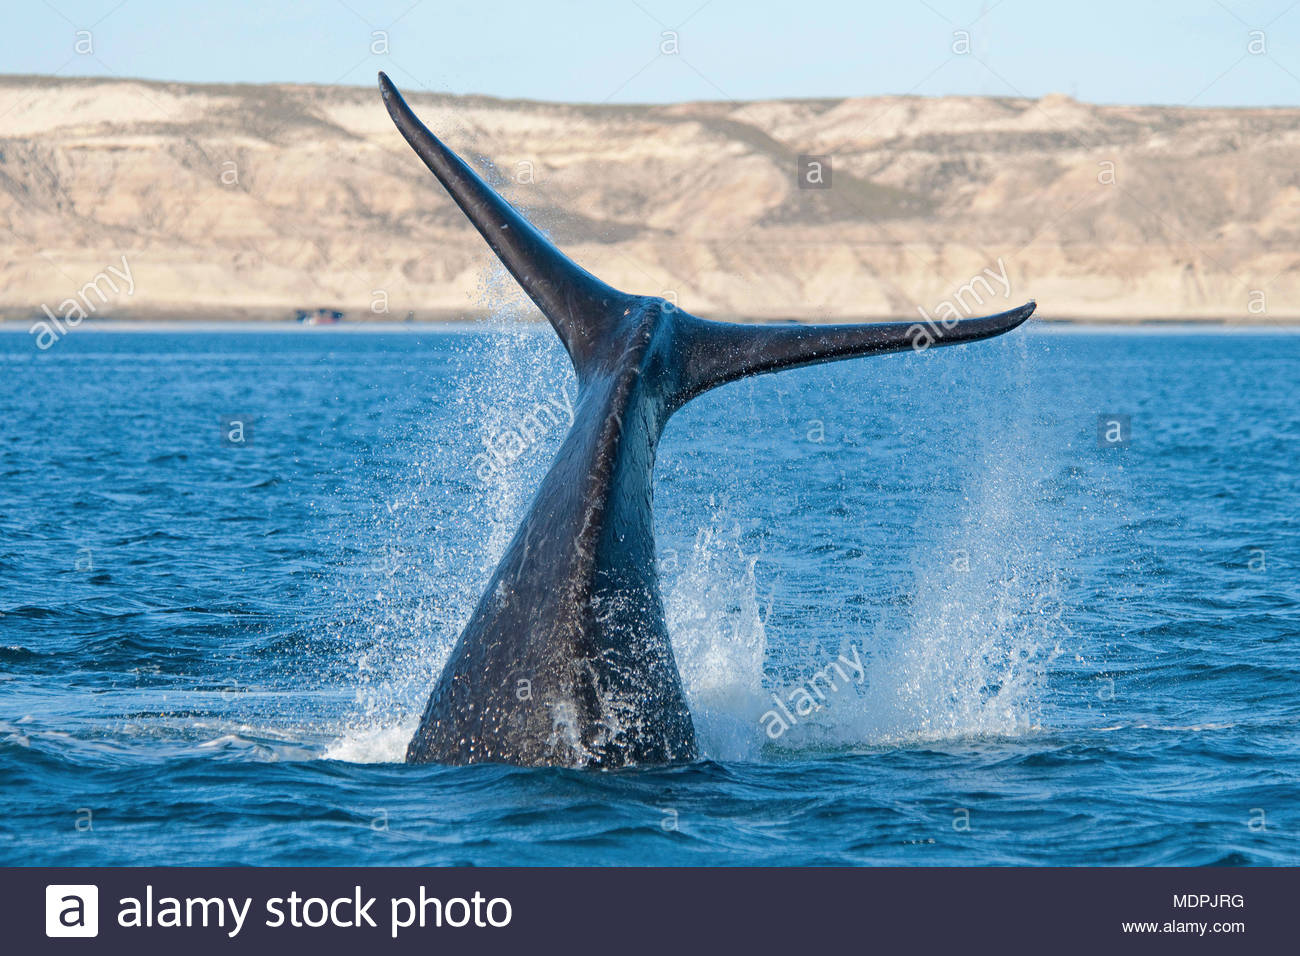 Flukes of a  Southern Right Whale, (Eubalaena australis) descending, Peninsula Valdes, Patagonia, Argentinia - Stock Image